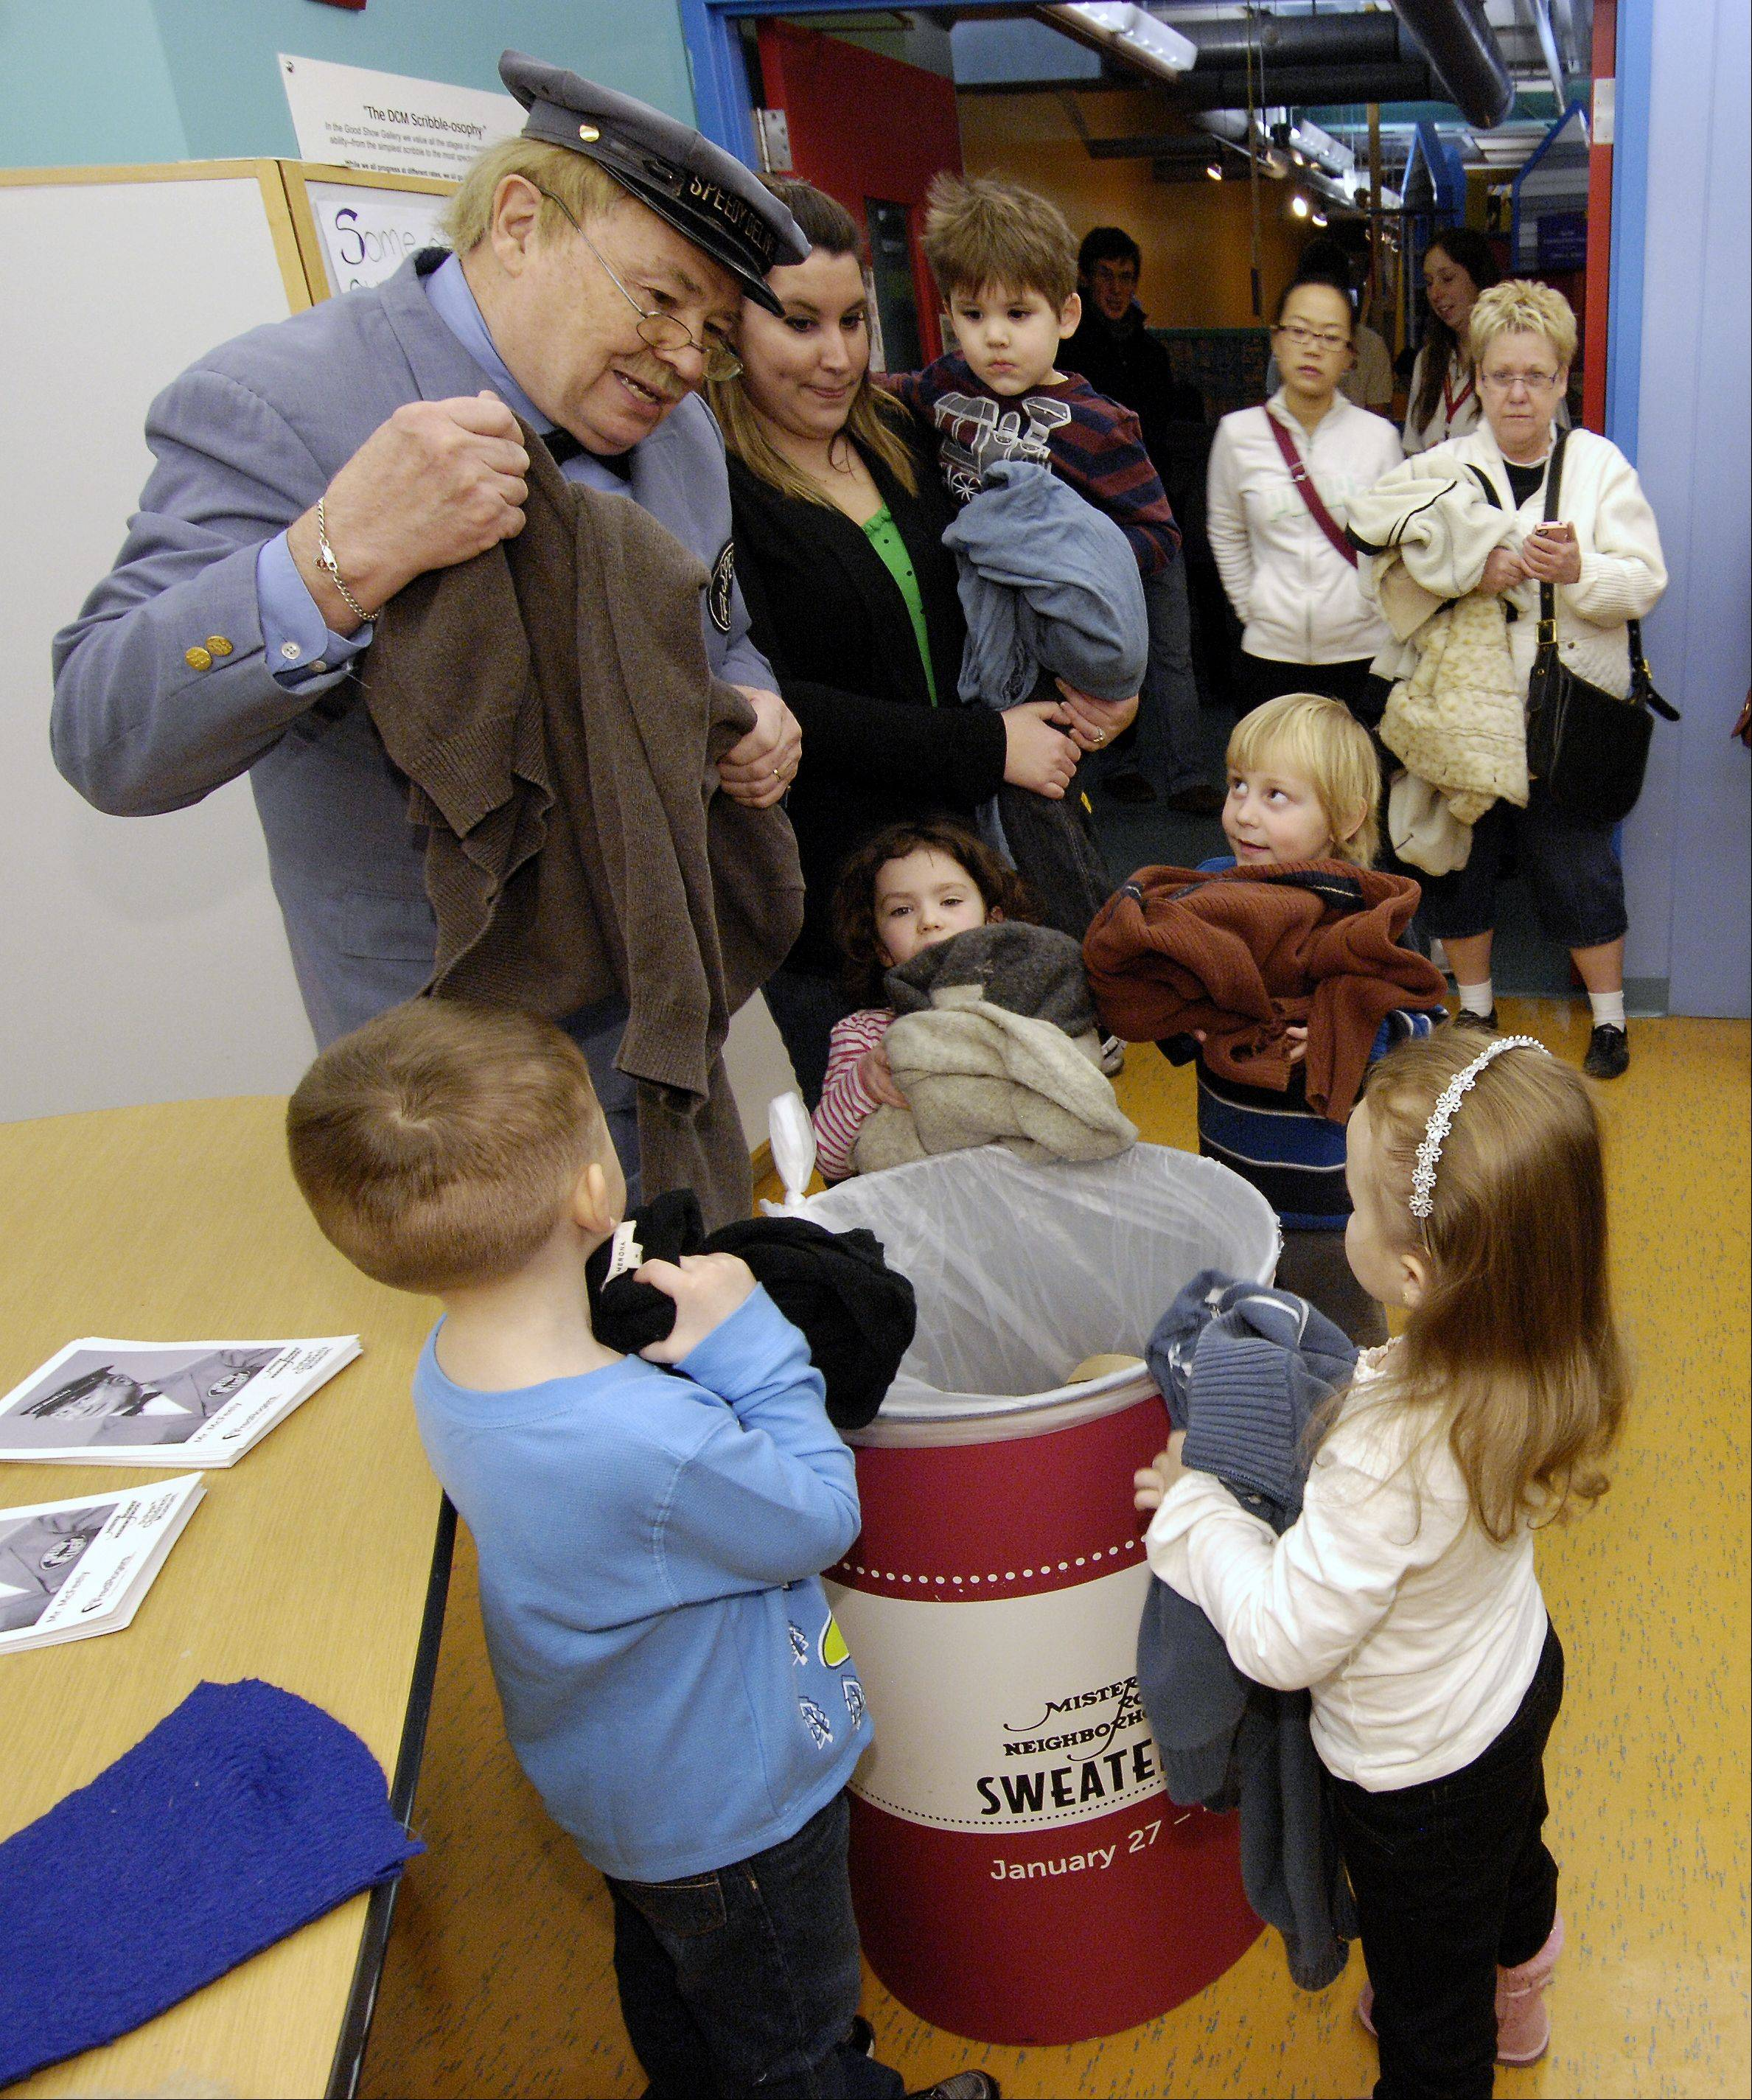 "David Newell, ""Mr. McFeely"" the Speedy Delivery man from the children's TV show ""Mr. Rogers' Neighborhood"" talks to kids about donating sweaters during a visits at the DuPage Children's Museum to kick of a sweater drive, Sunday."